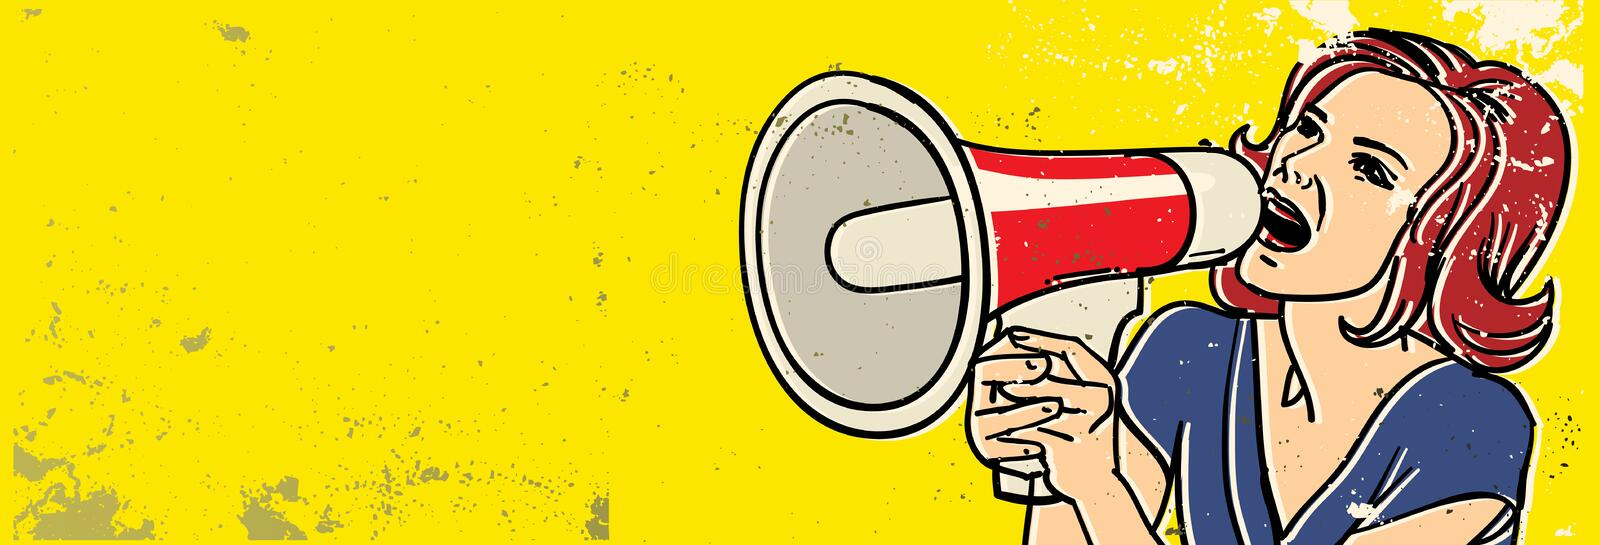 Megaphone woman vector illustration